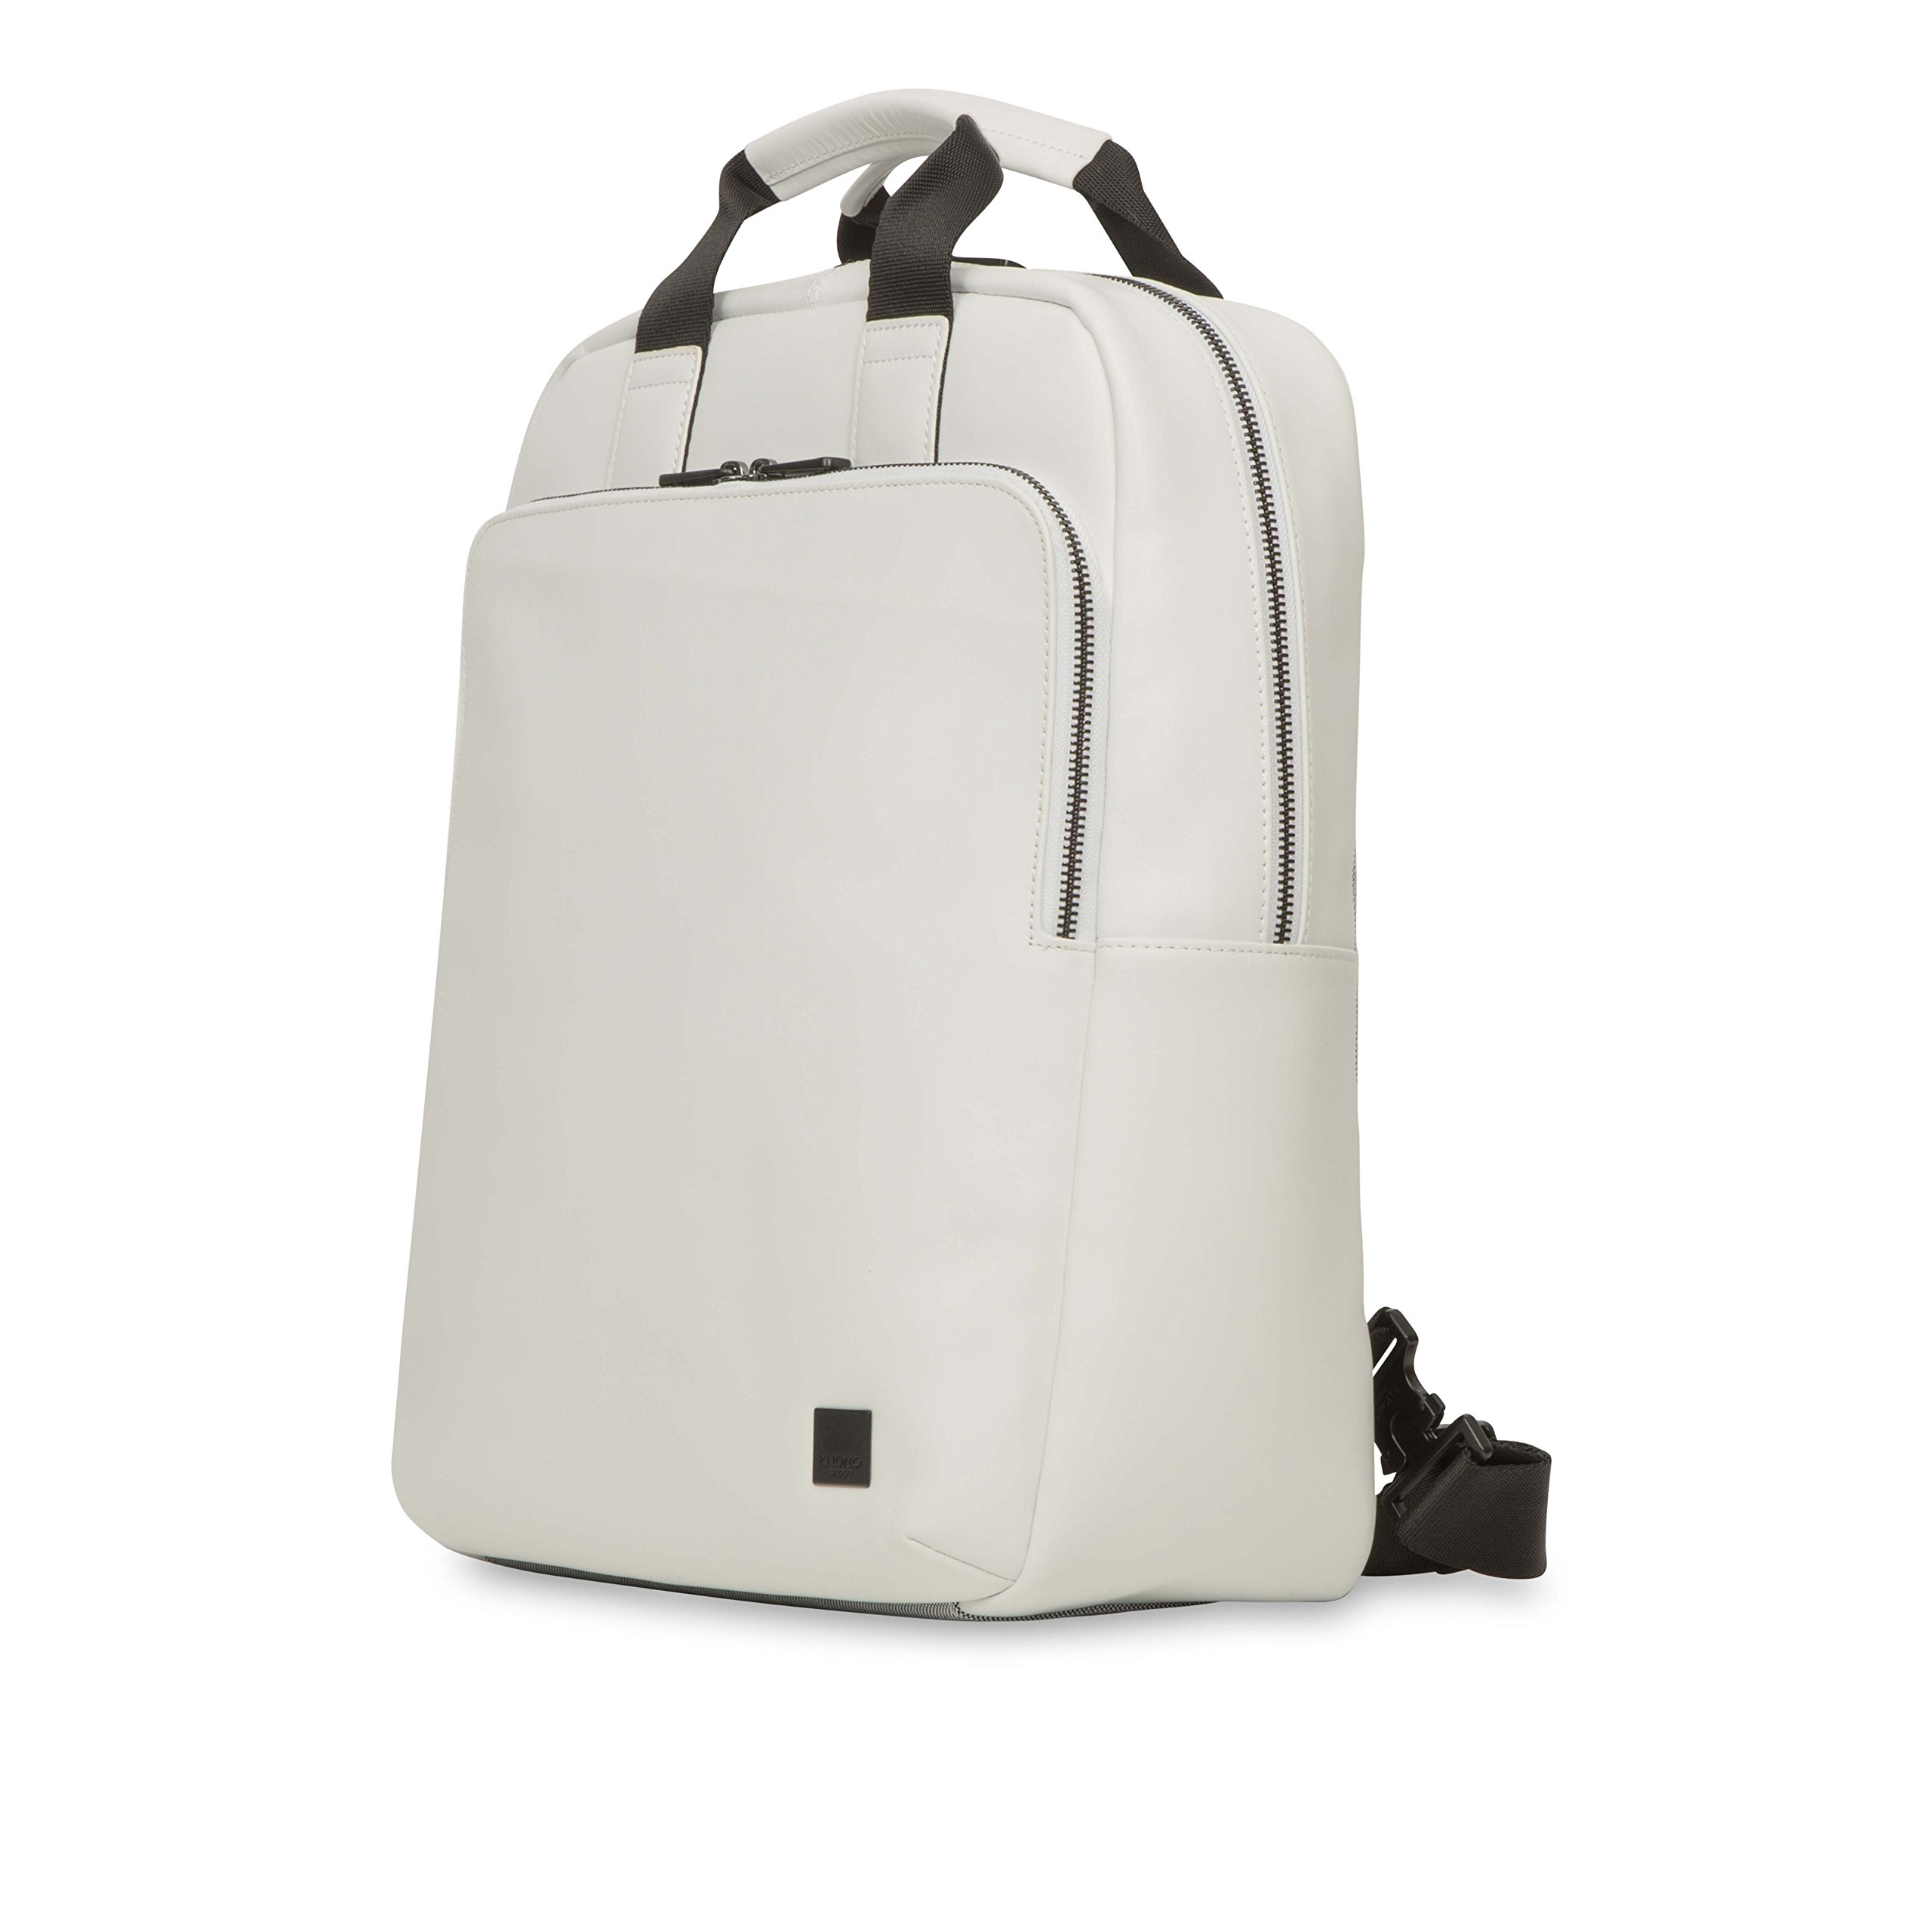 Knomo Luggage Men's Dale Business Backpack, White, One Size by Knomo